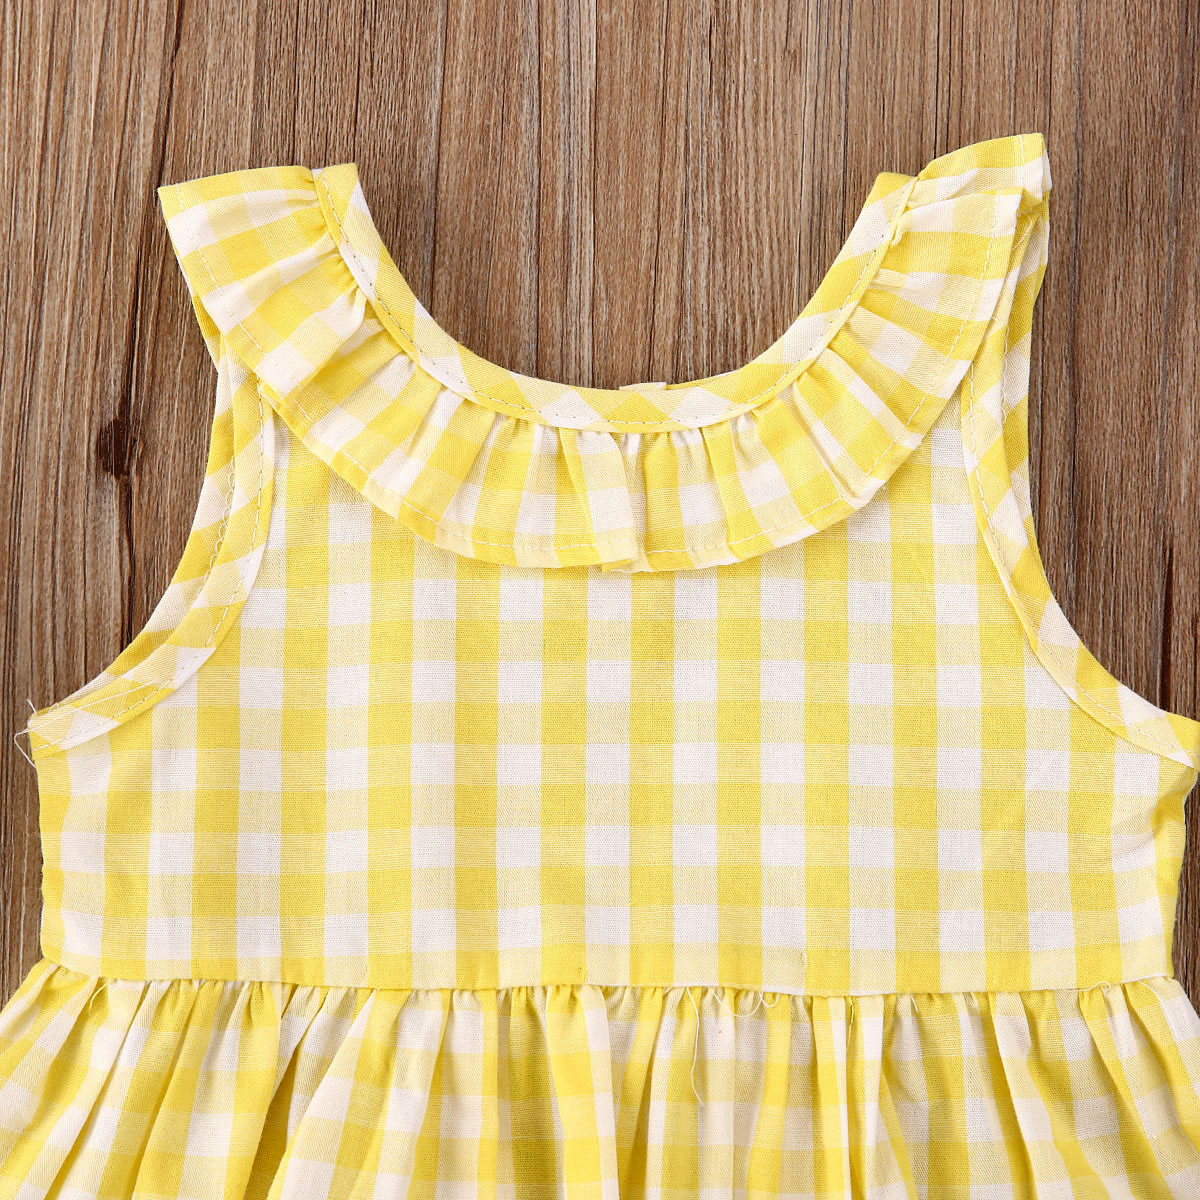 US New Toddler Baby Girl Kid Top Plaid Strap Skirt Outfit Dress Clothes Set 0-3Y